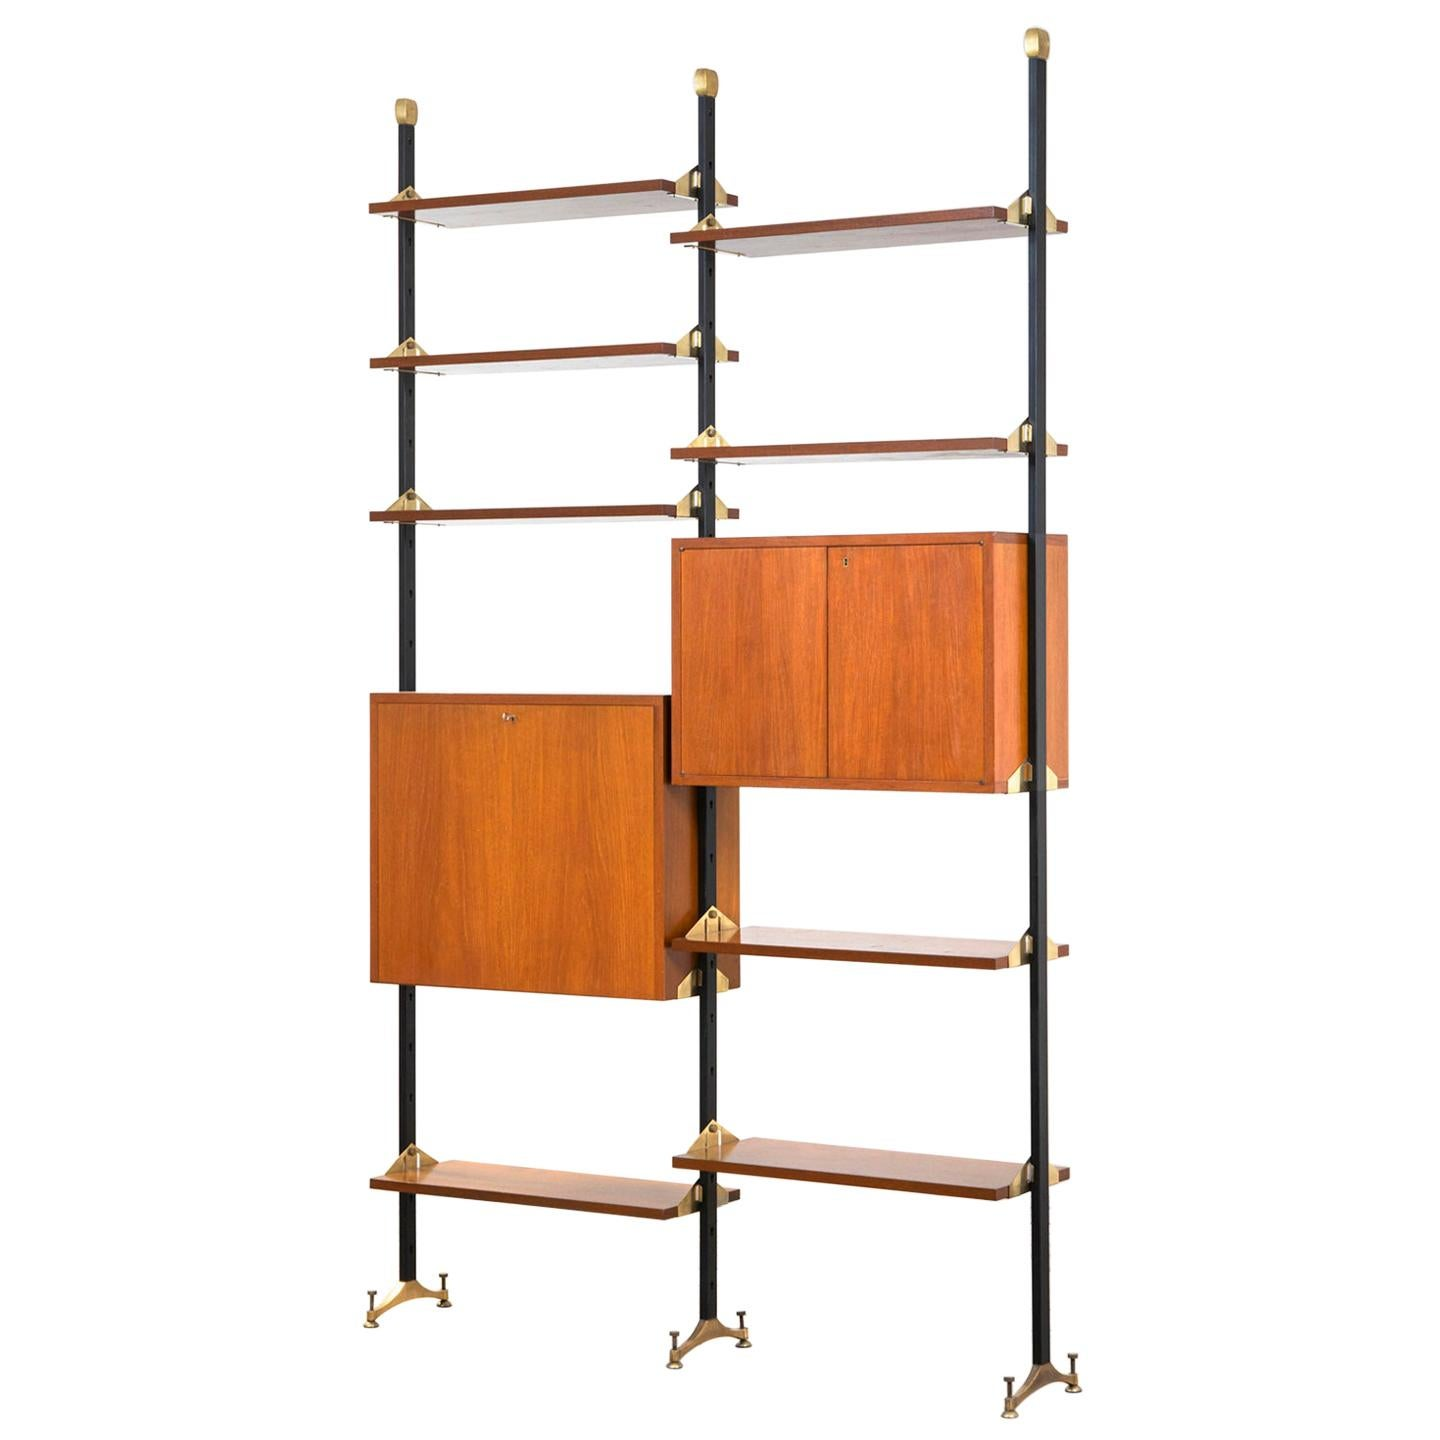 20th Century Bookcase with Shelves and Cabinets in Wood and Brass Italian School